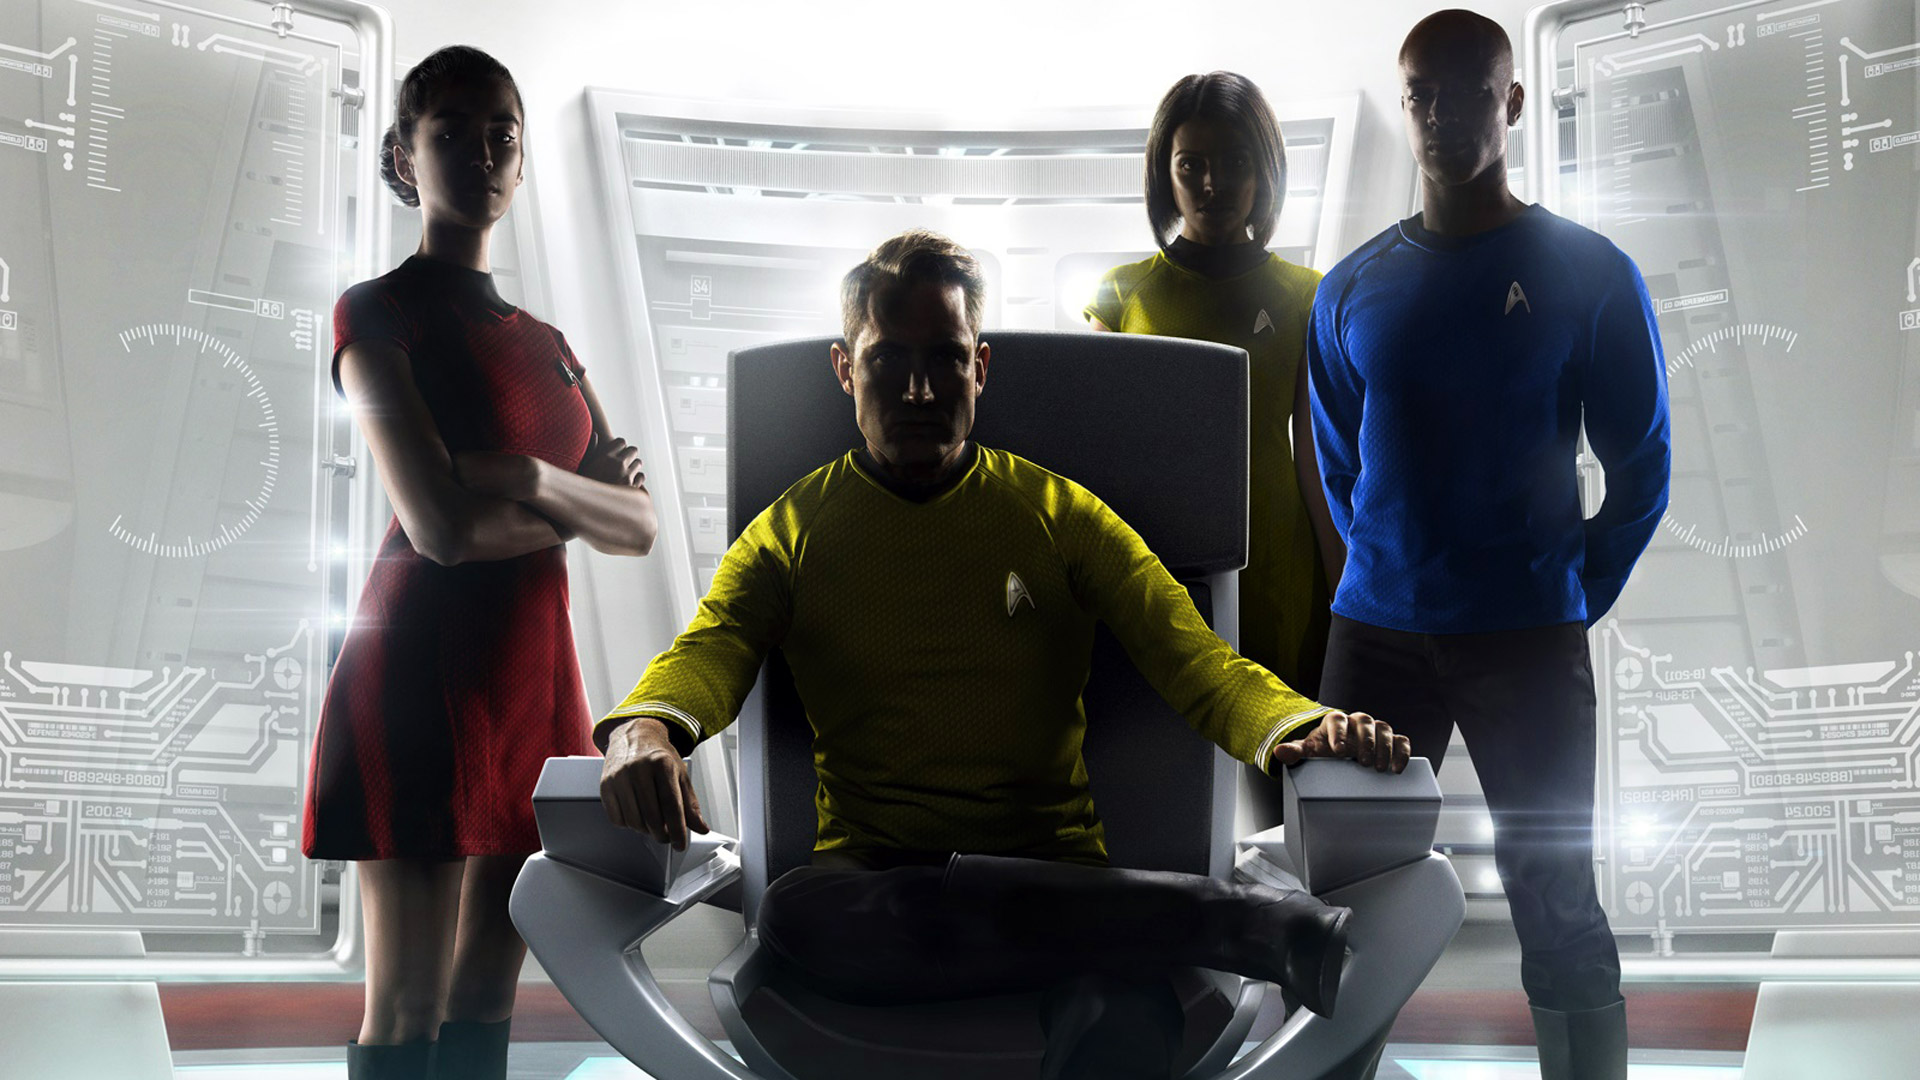 Captain on the bridge… - A dry spell of Star Trek video games is broken by a demo-worthy example of virtual reality gaming. Engage.